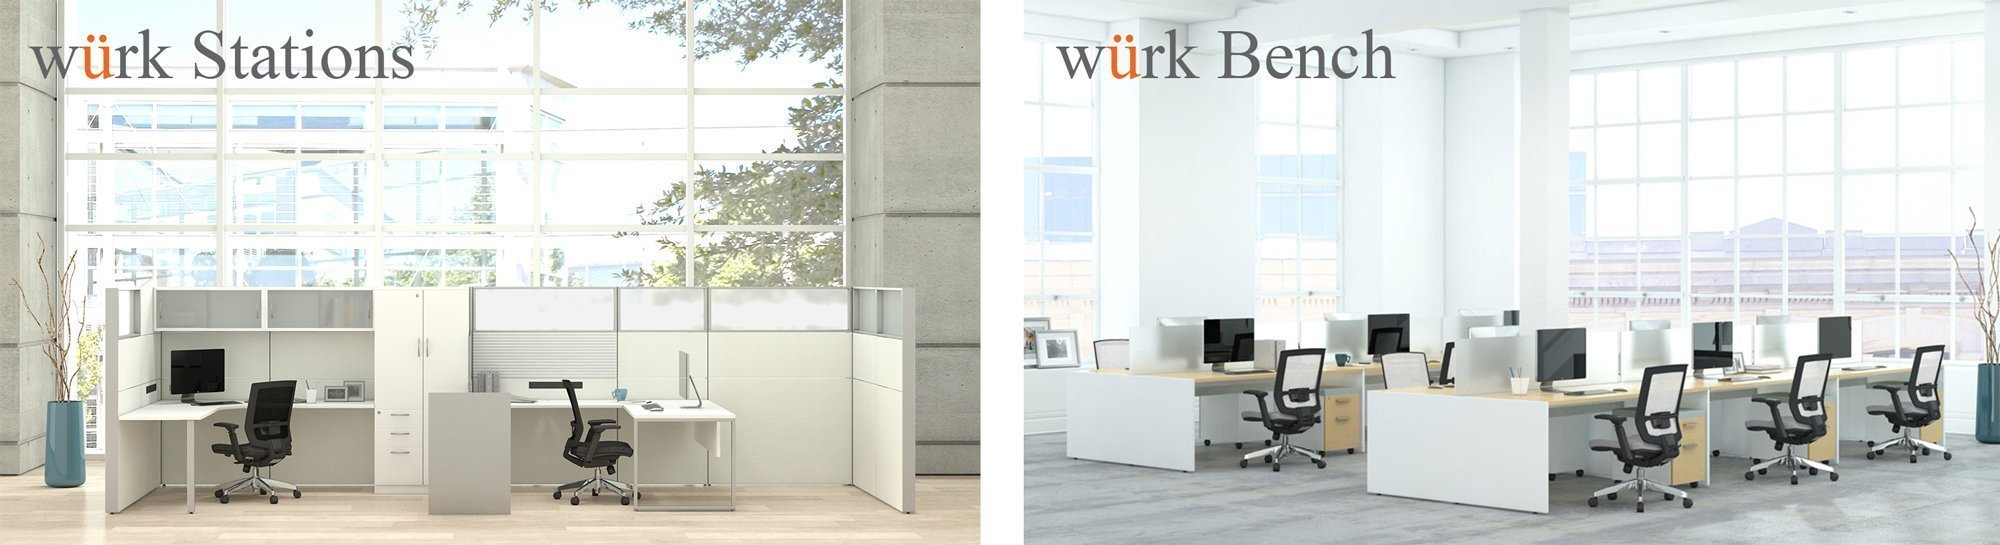 workStations wurk Bench